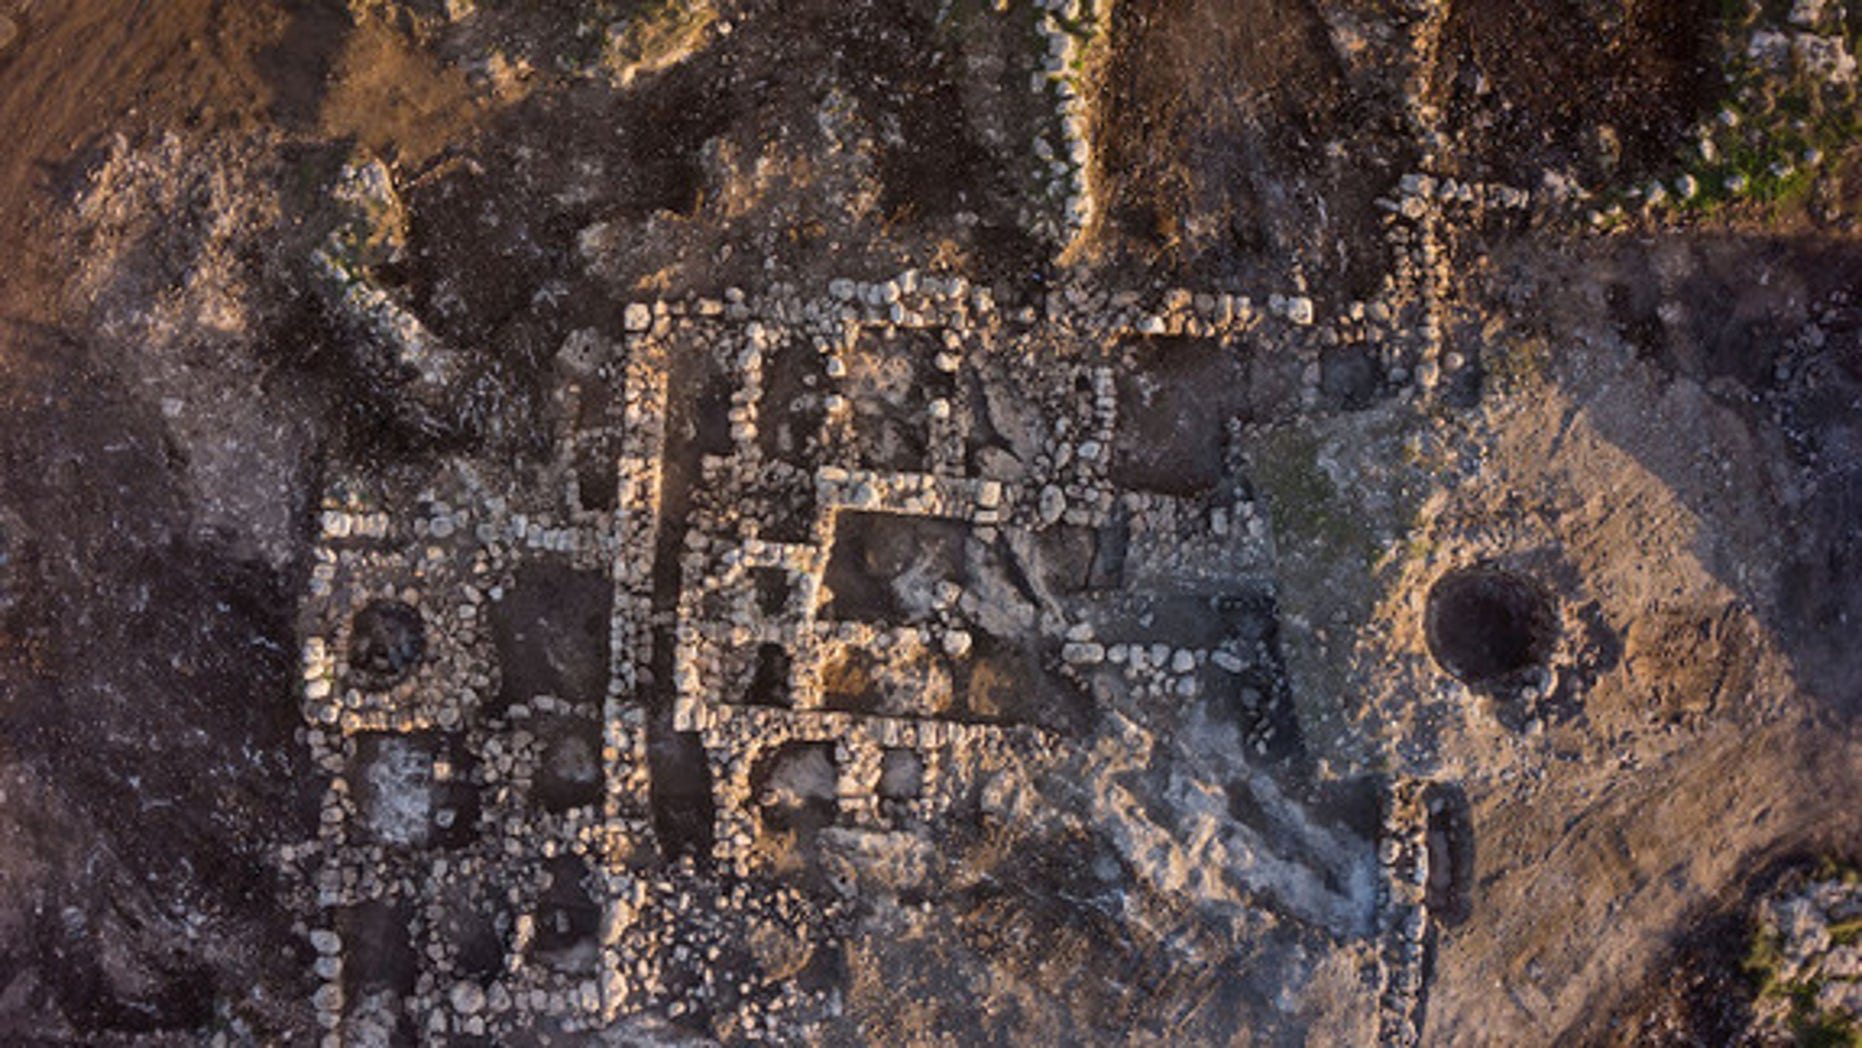 A bird's-eye view of the 23-room farmhouse from the eighth century B.C.